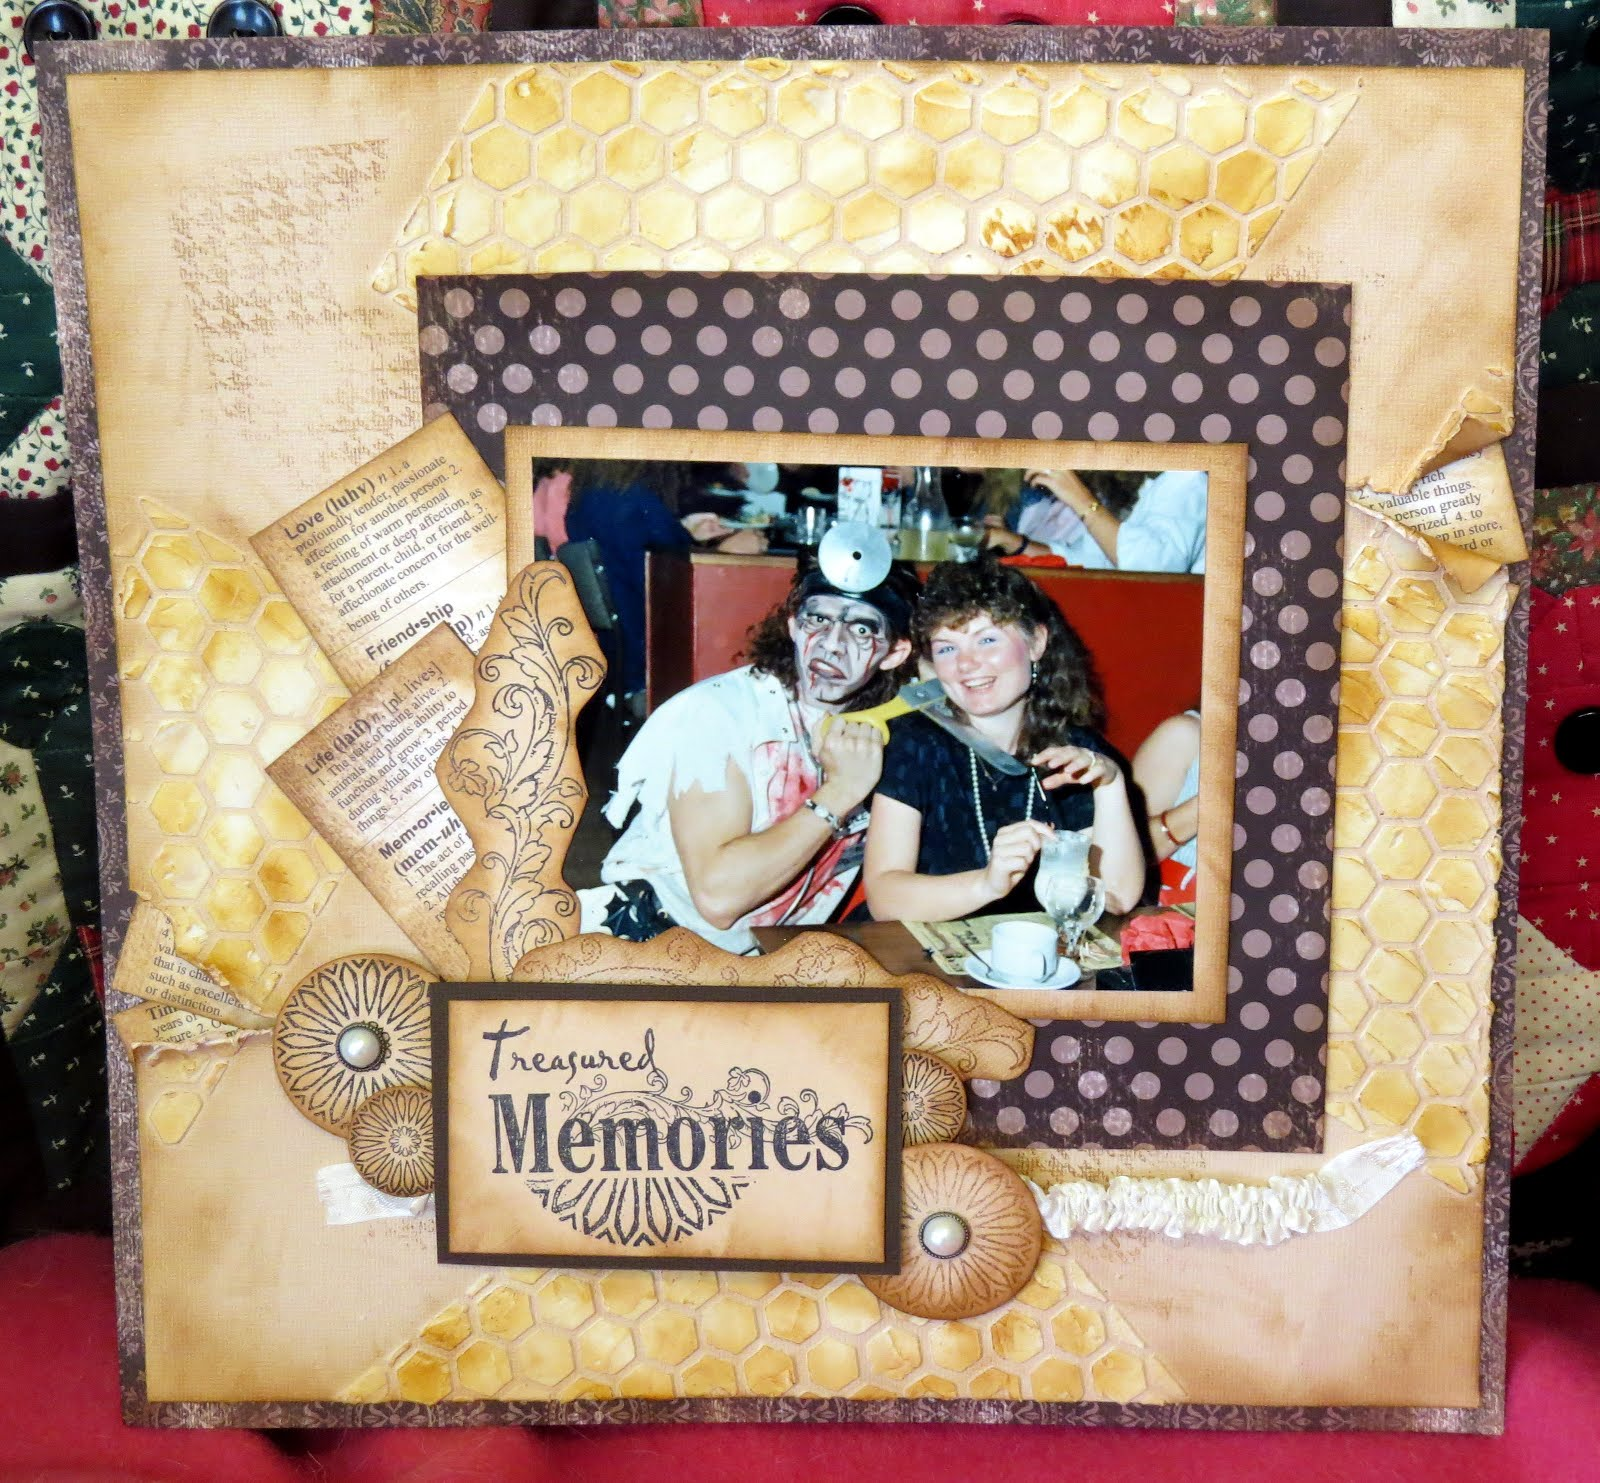 Treasured Memories 1988